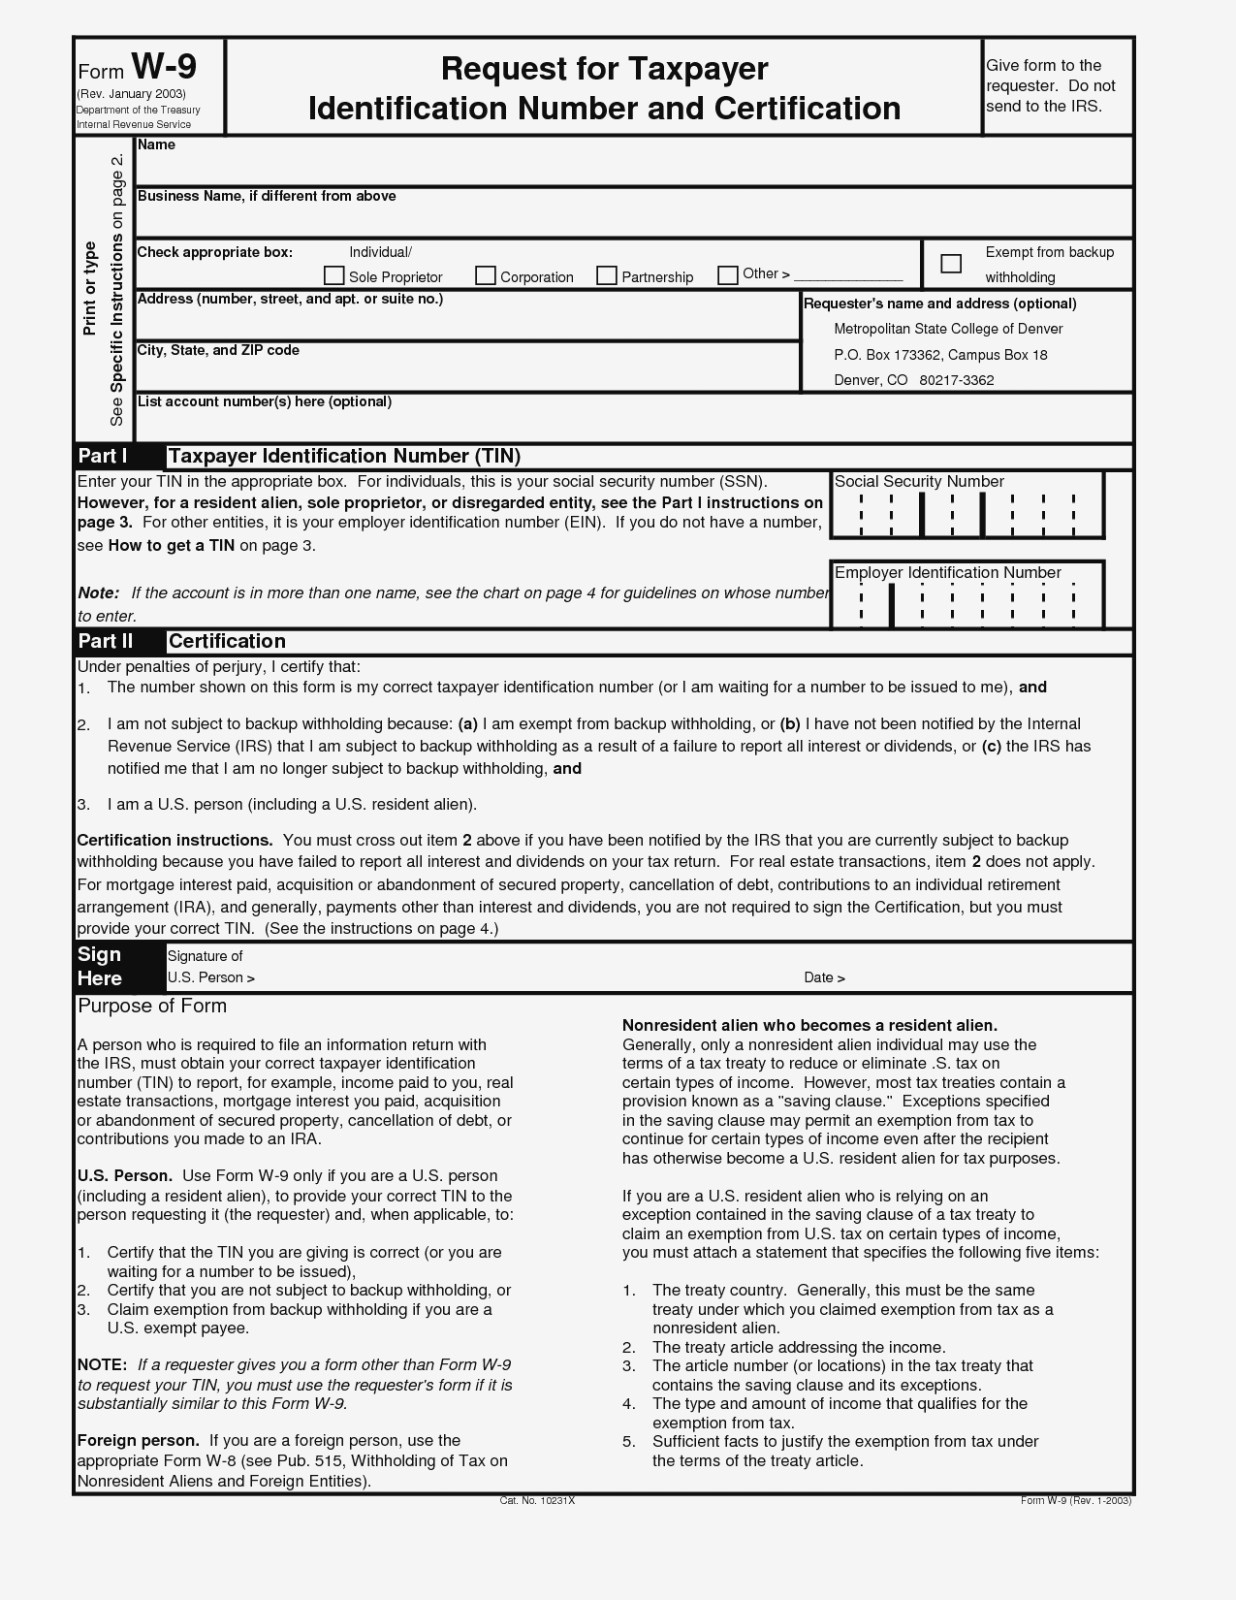 Free W13 Form Filename | Down Town Ken More – W 9 Form Irs 2016 - W9 Free Printable Form 2016